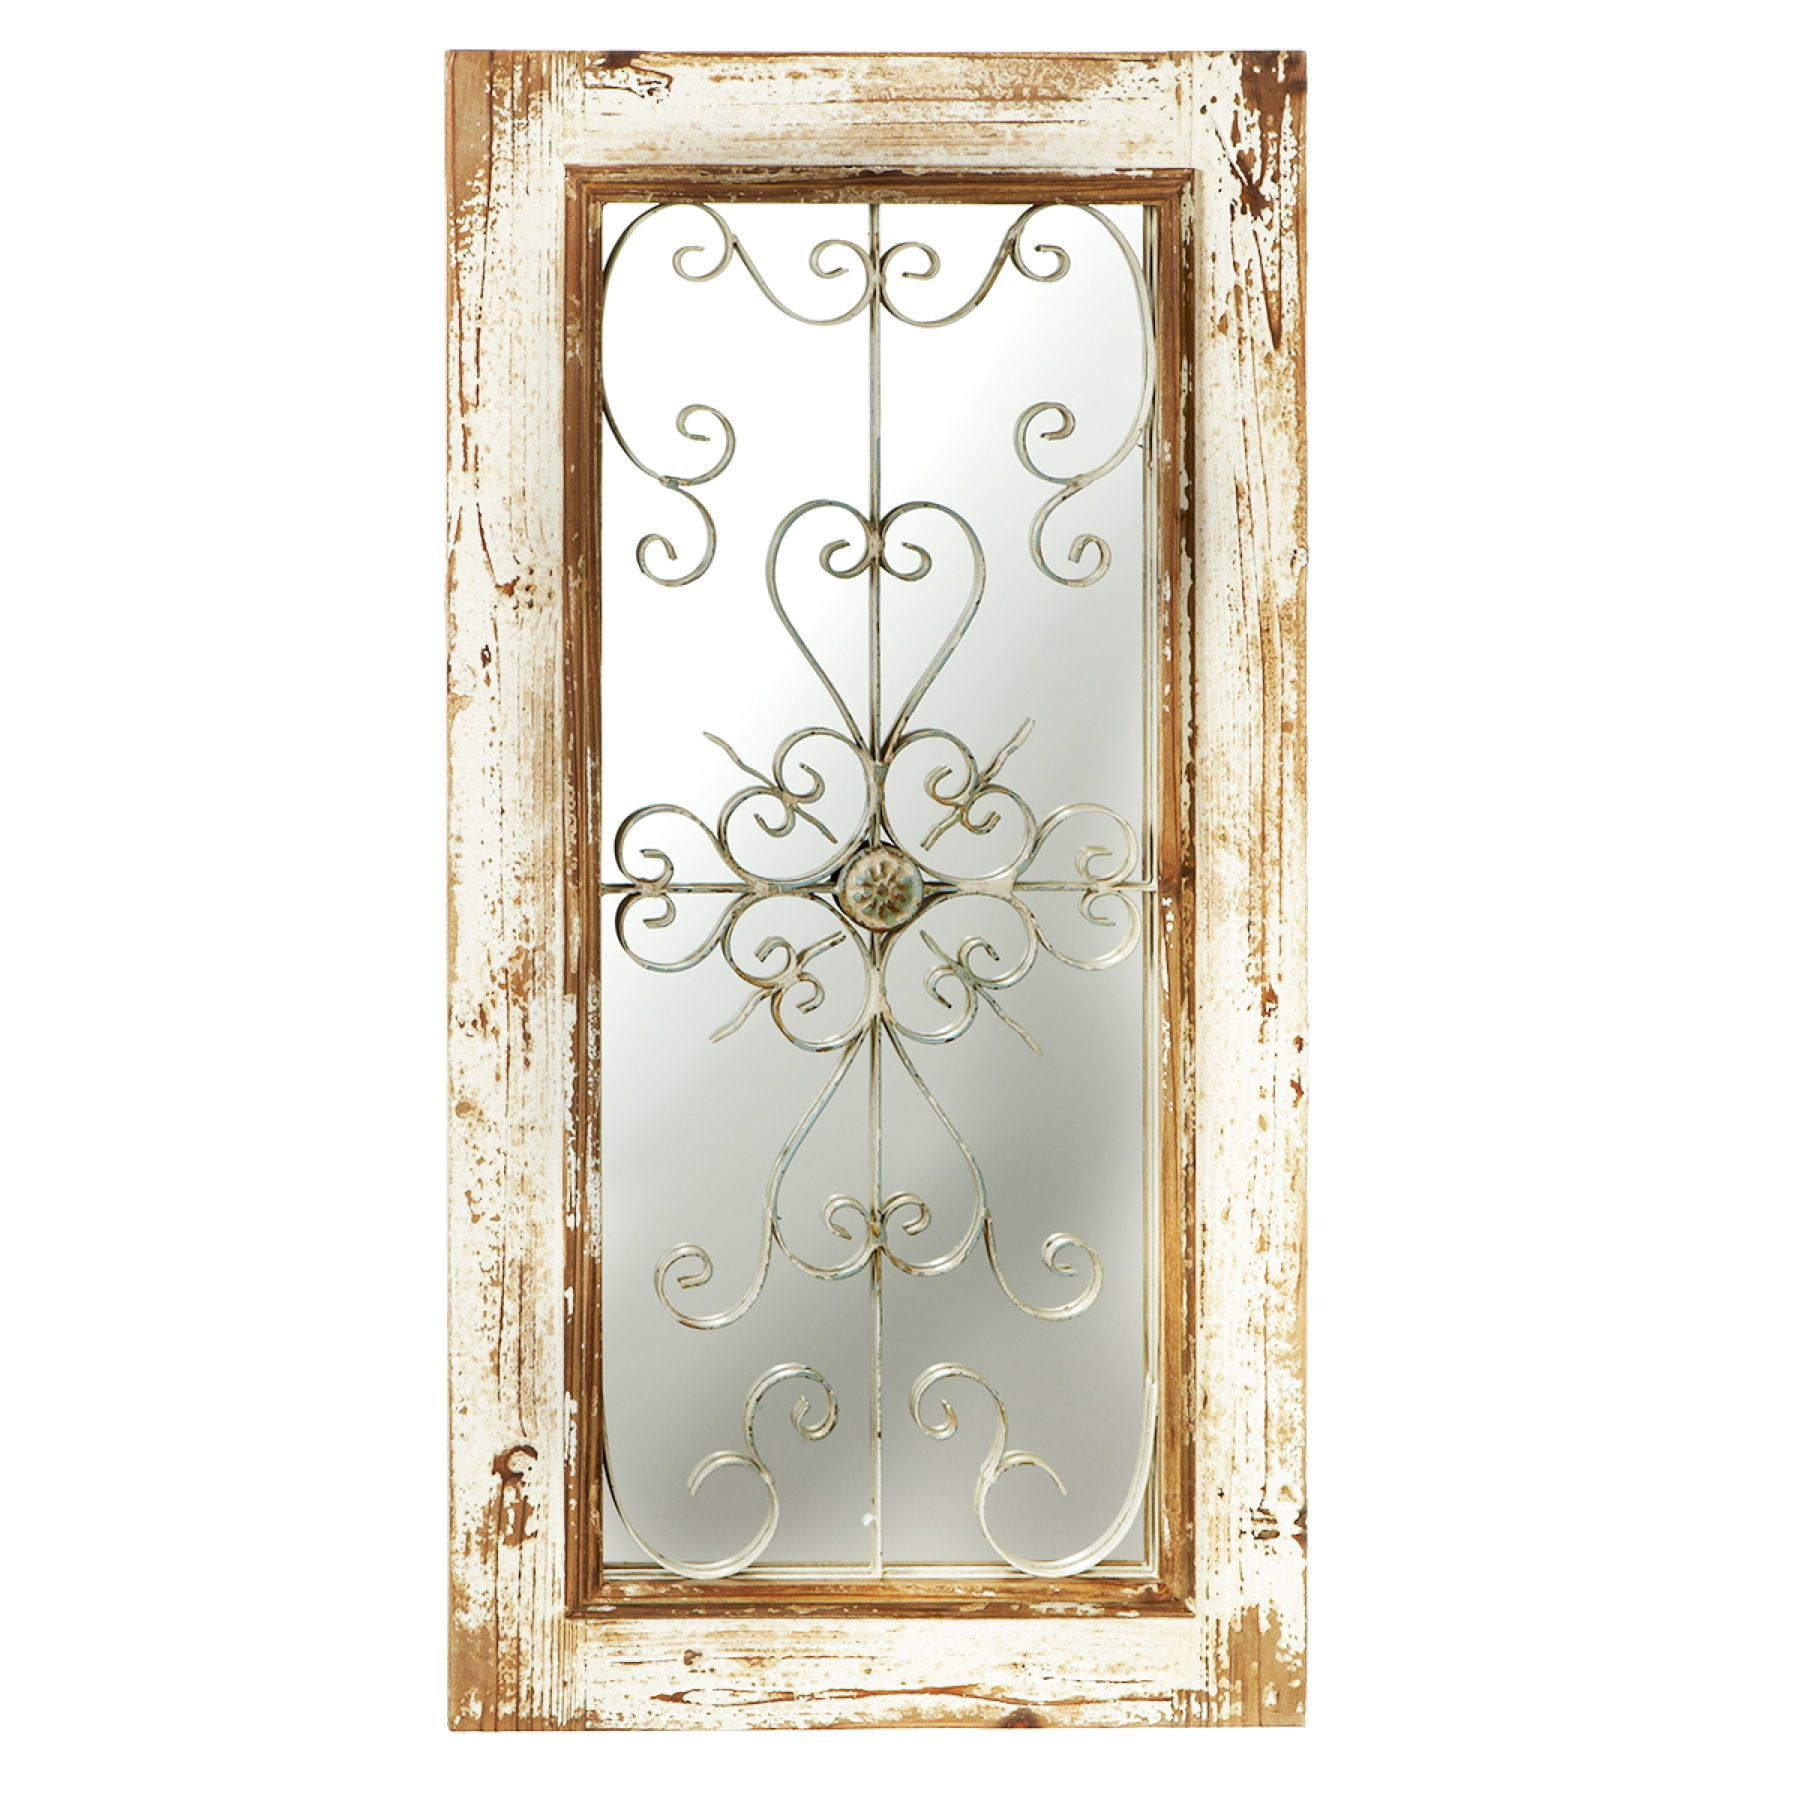 Distressed White Wall Mirror with Rusted Scroll